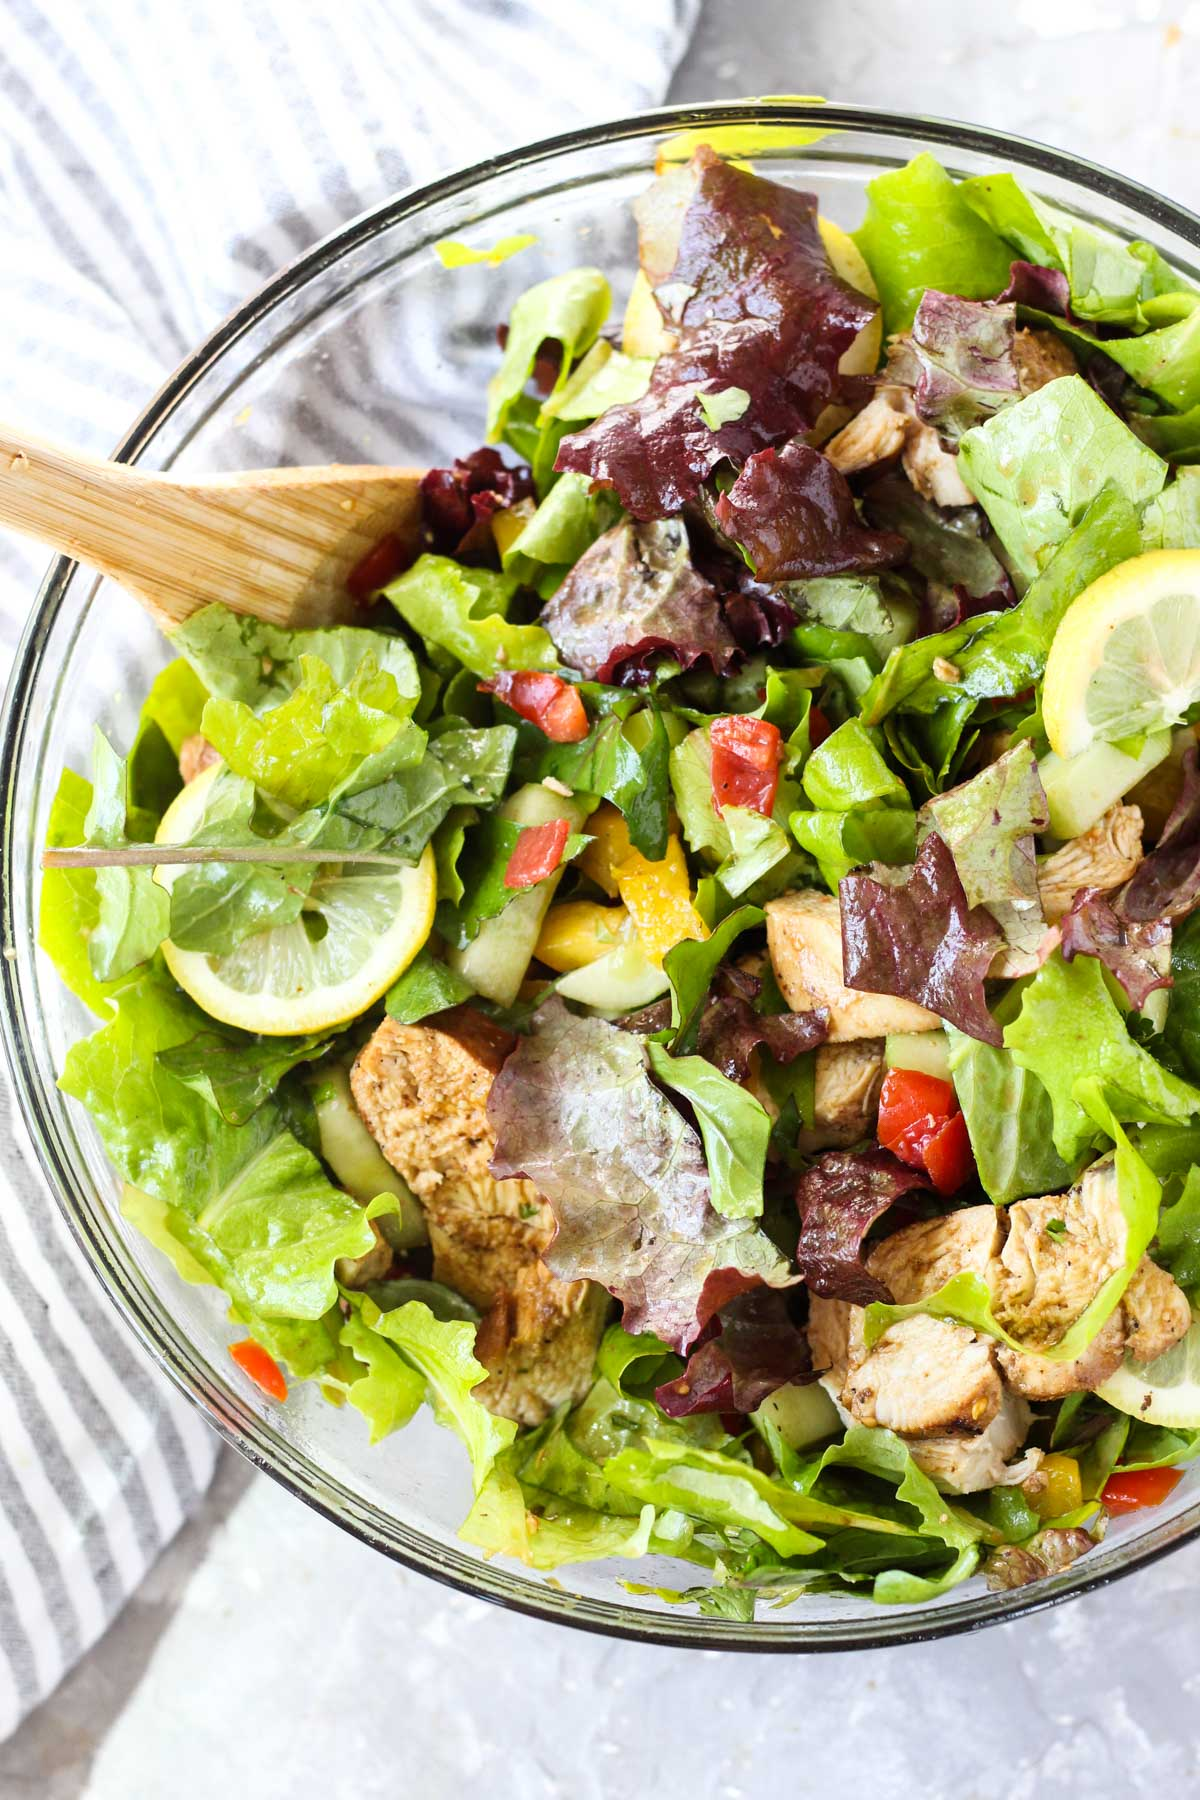 Salad tossed in large glass bowl.